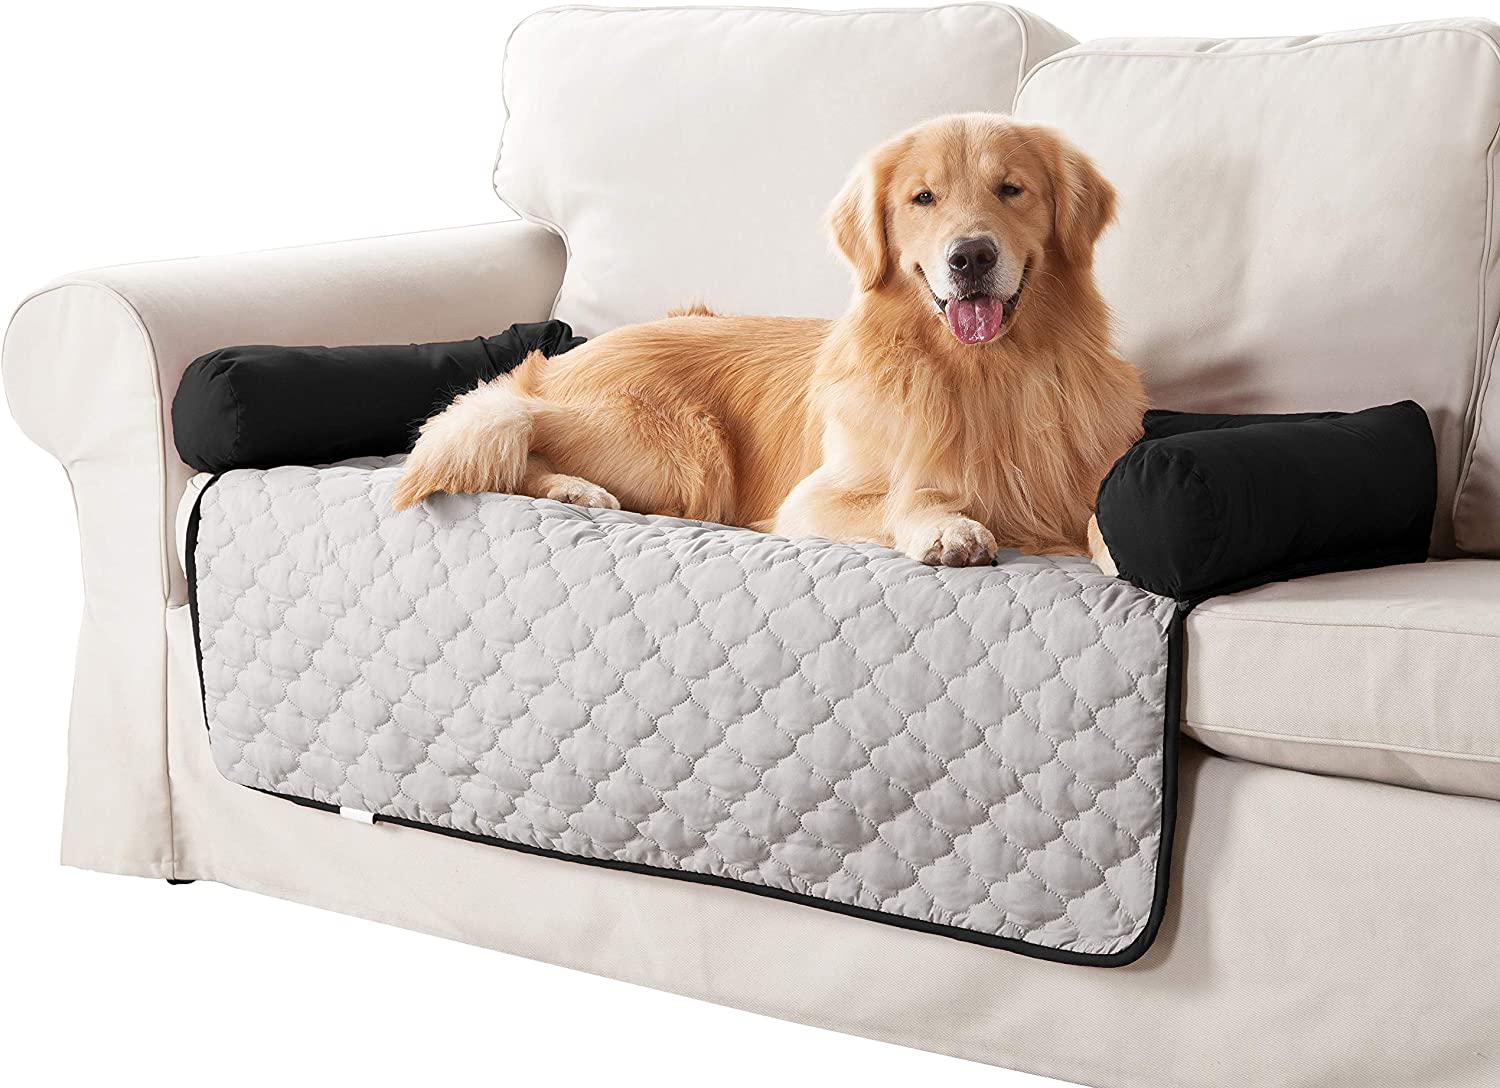 Quick Fit Wubba Reversible Pet Bed Couch Cover for Dogs, 45x34, Silver-Black